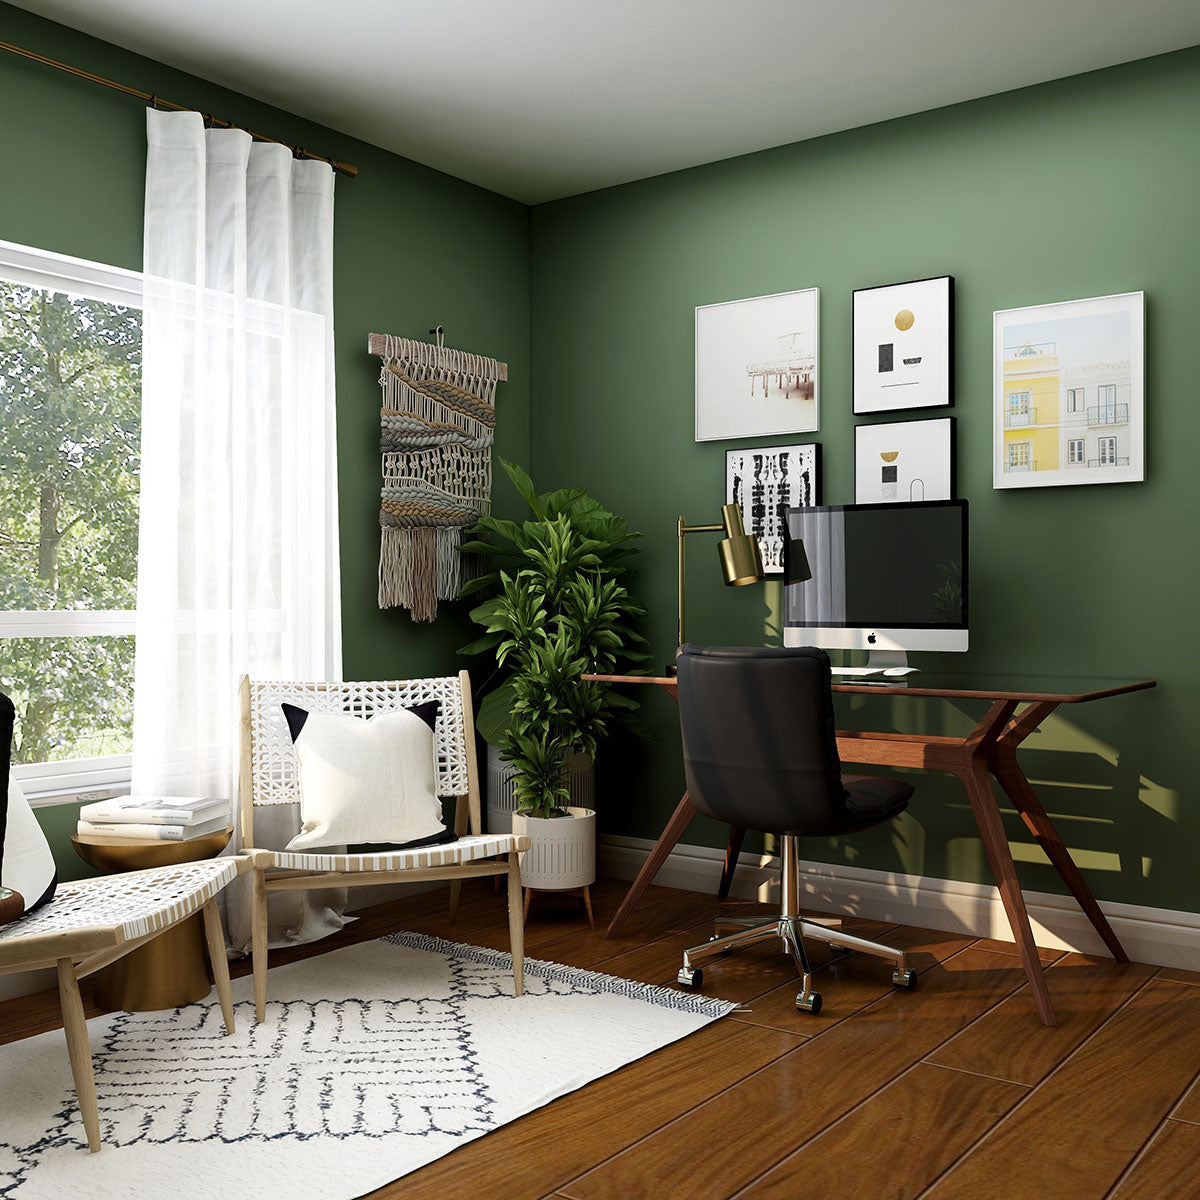 Create a work from home space you love